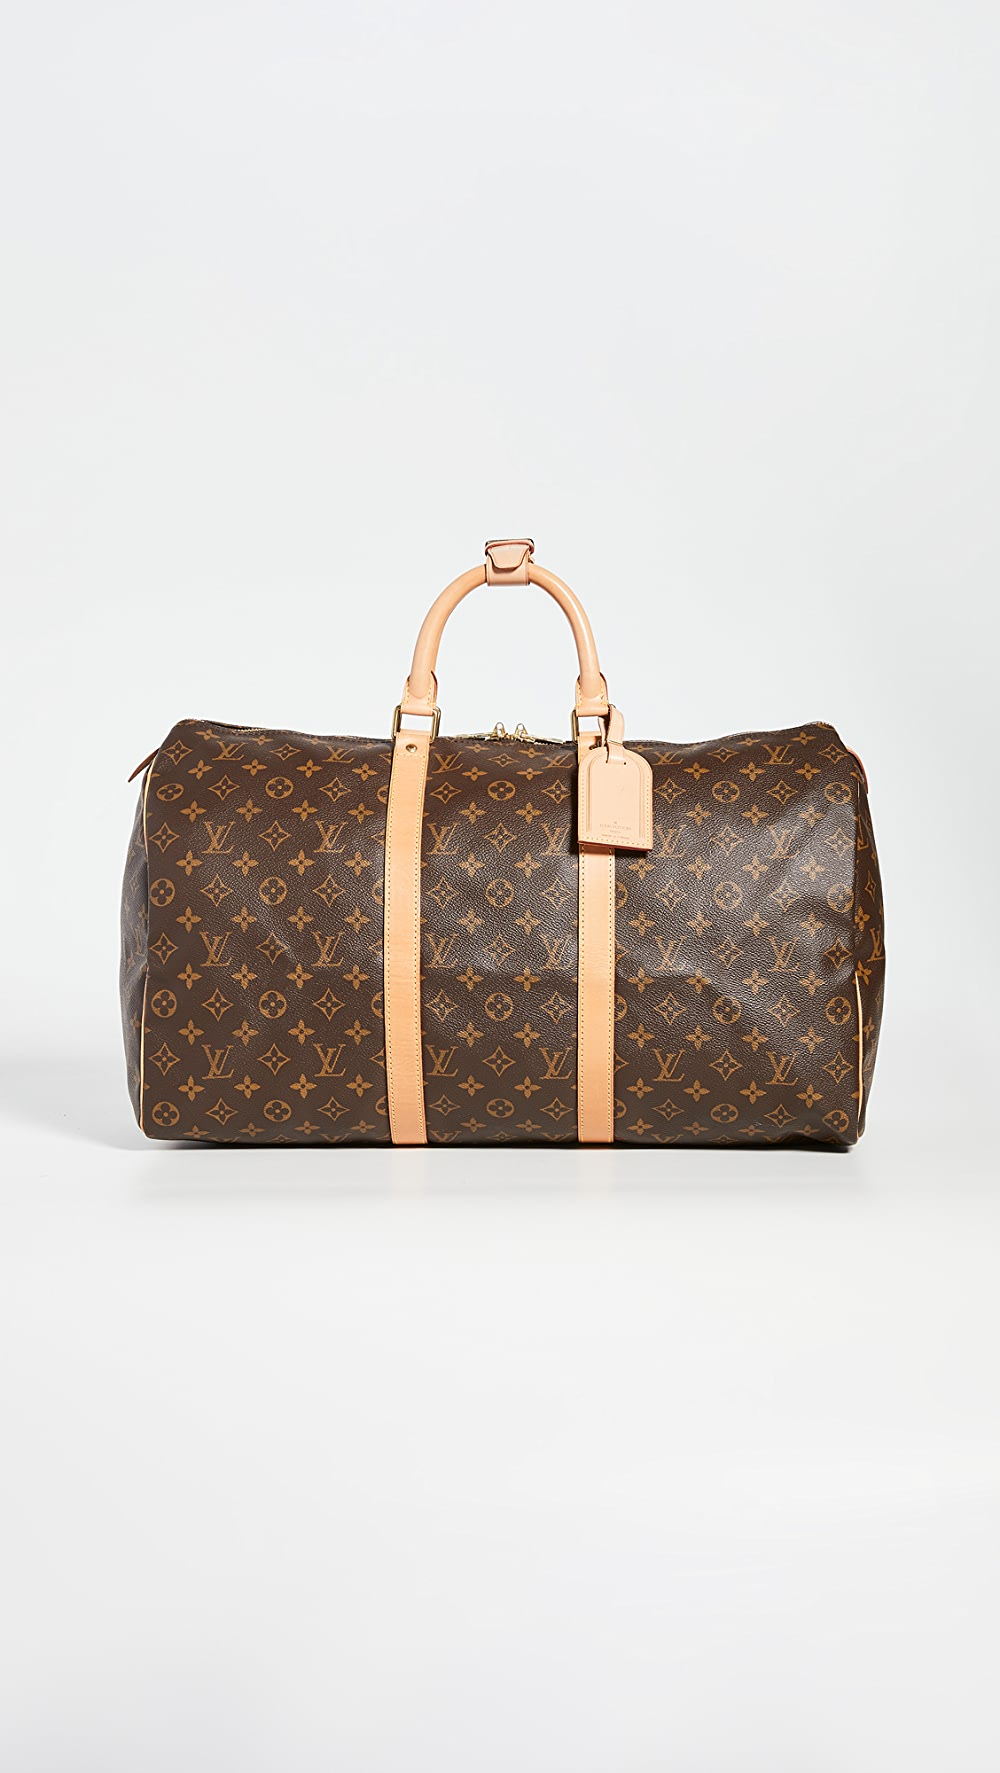 Open-Minded What Goes Around Comes Around - Lv Monogram Keepall Pretty And Colorful